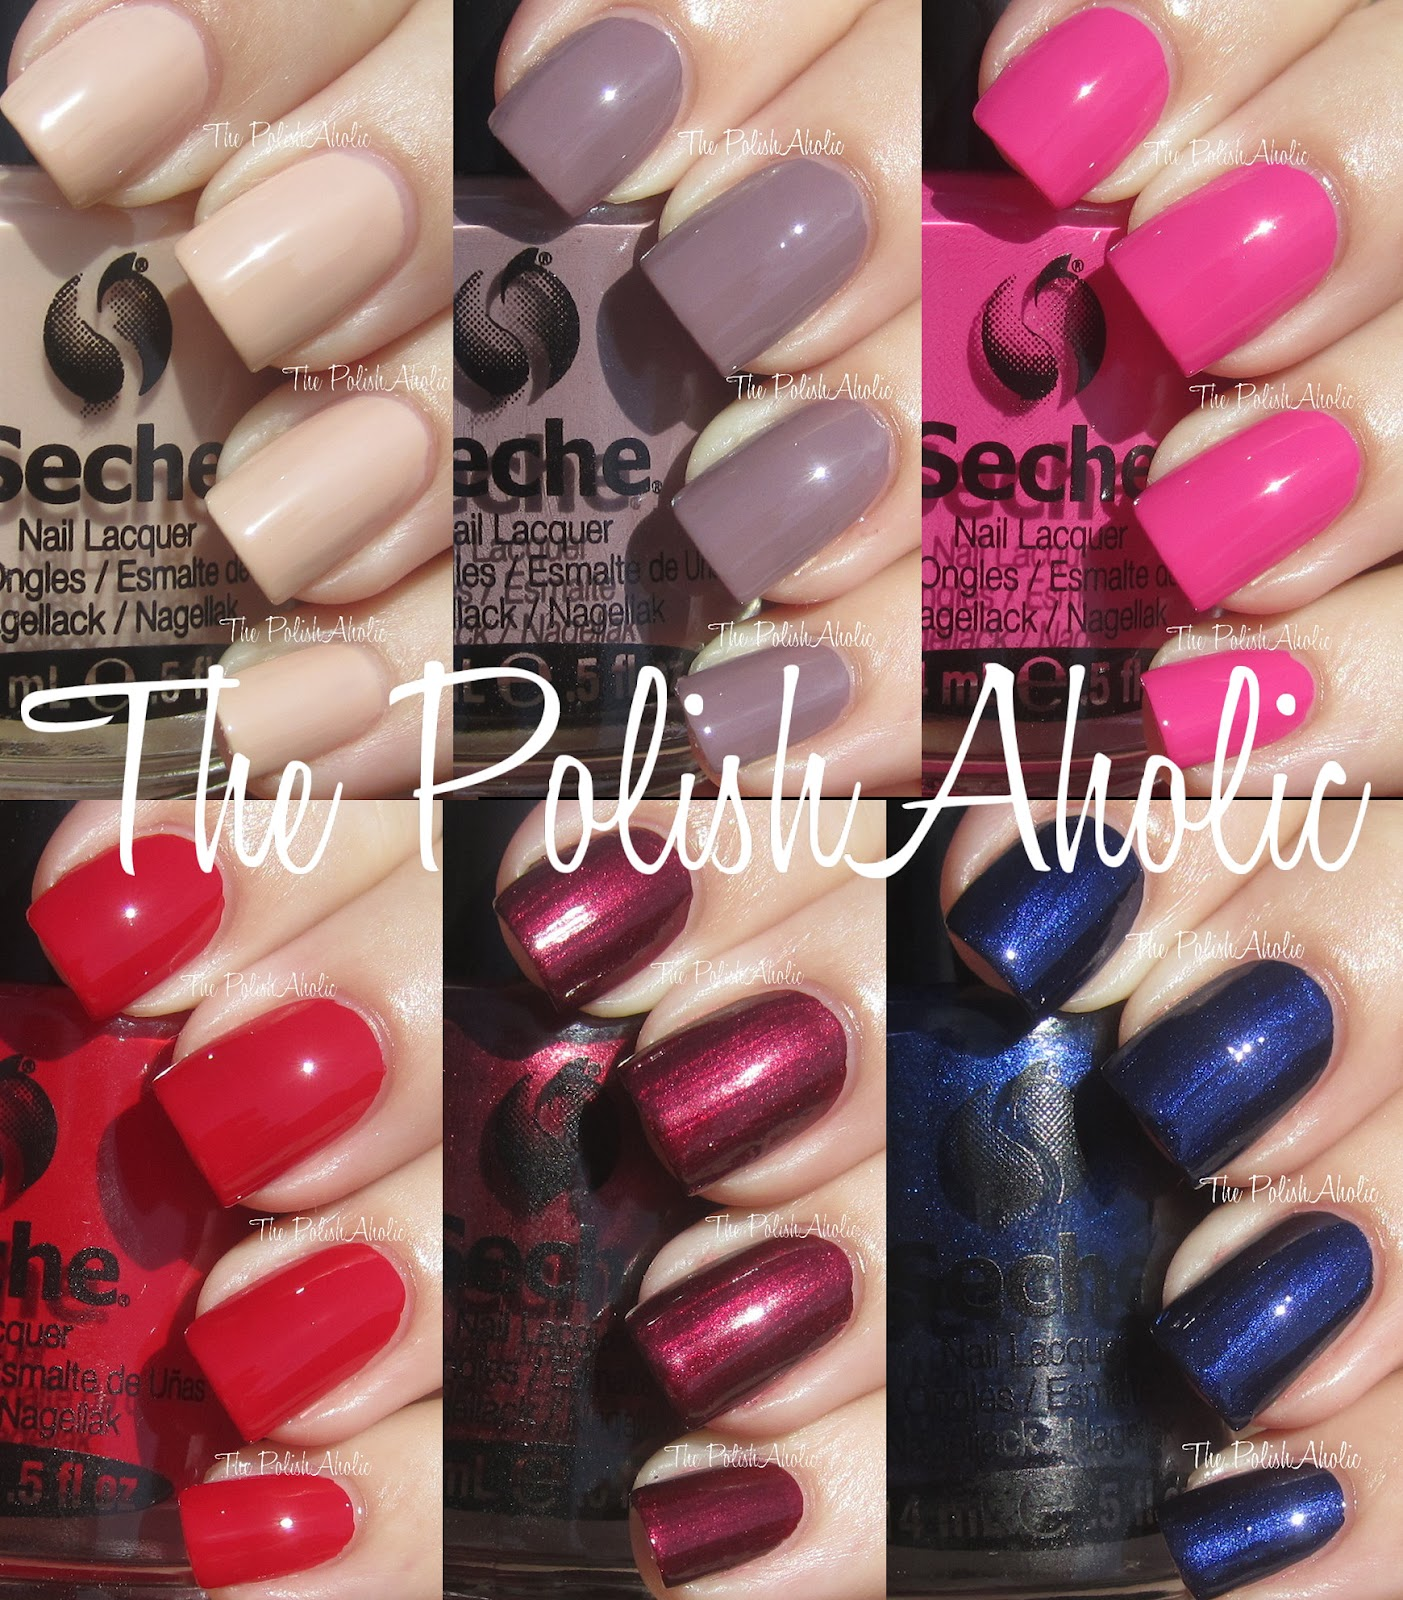 The PolishAholic: Seche Nail Lacquer Swatches & Review